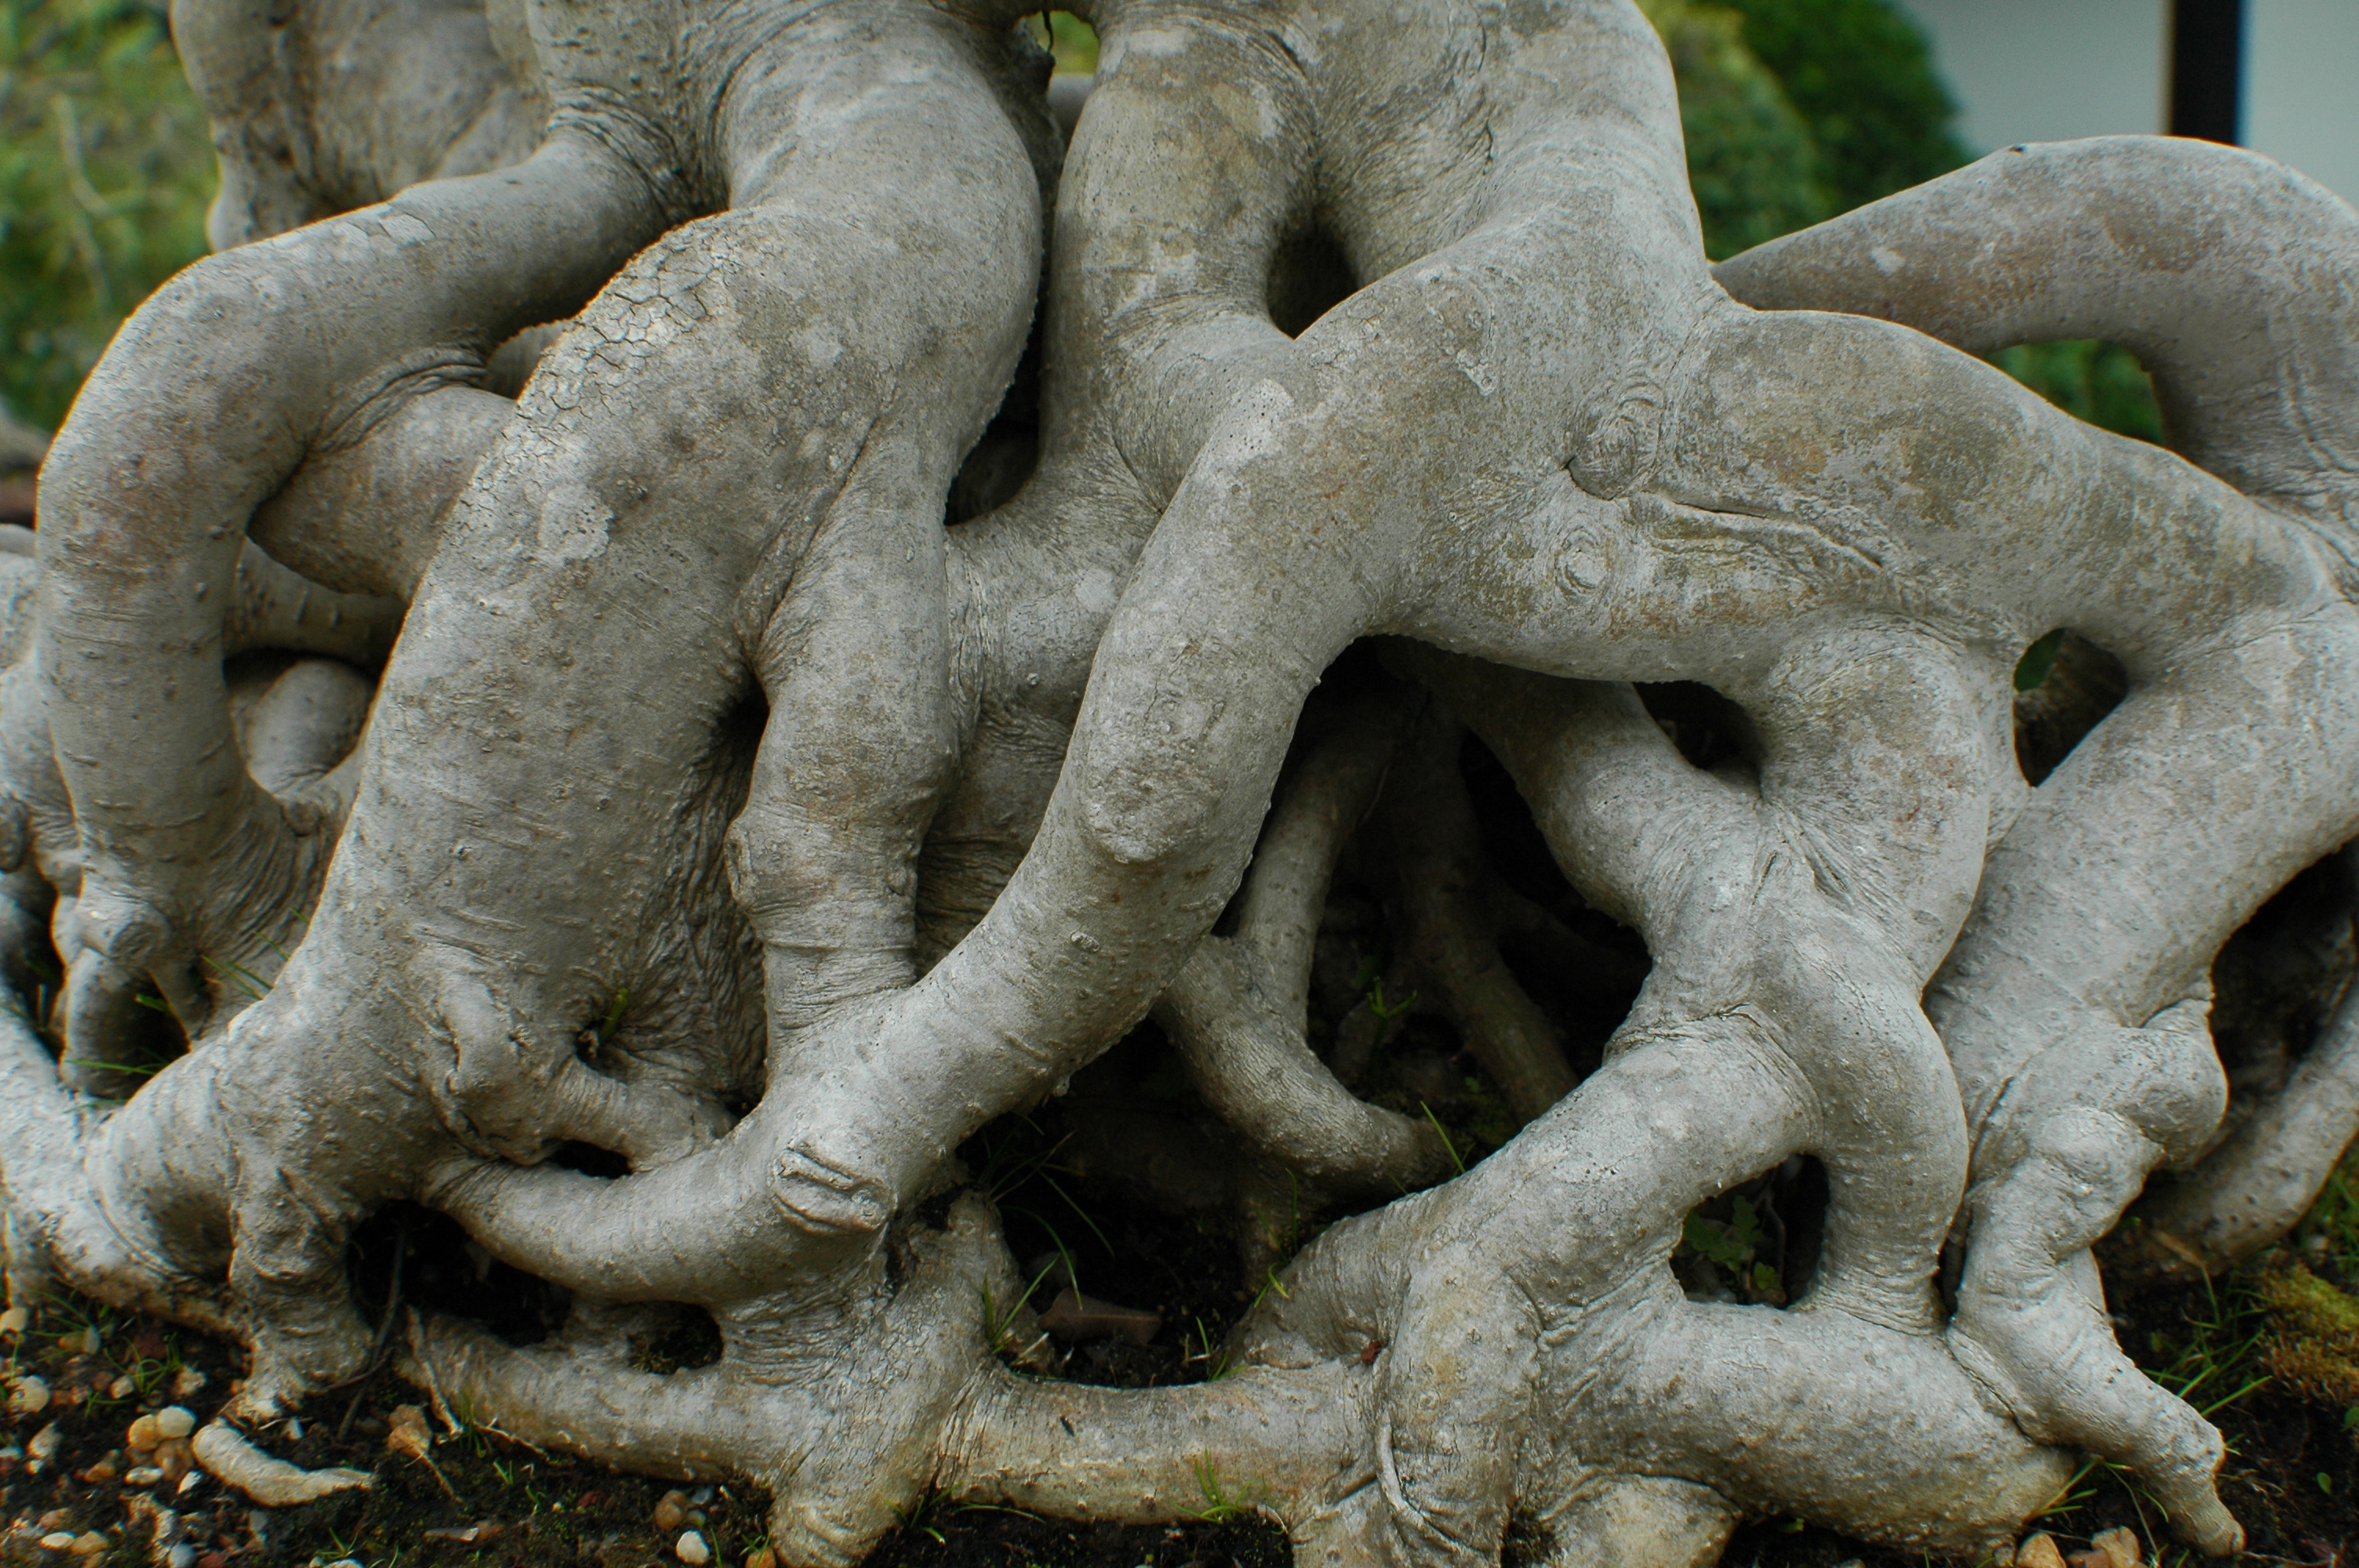 Joe Dobrow photo of twisted tree roots